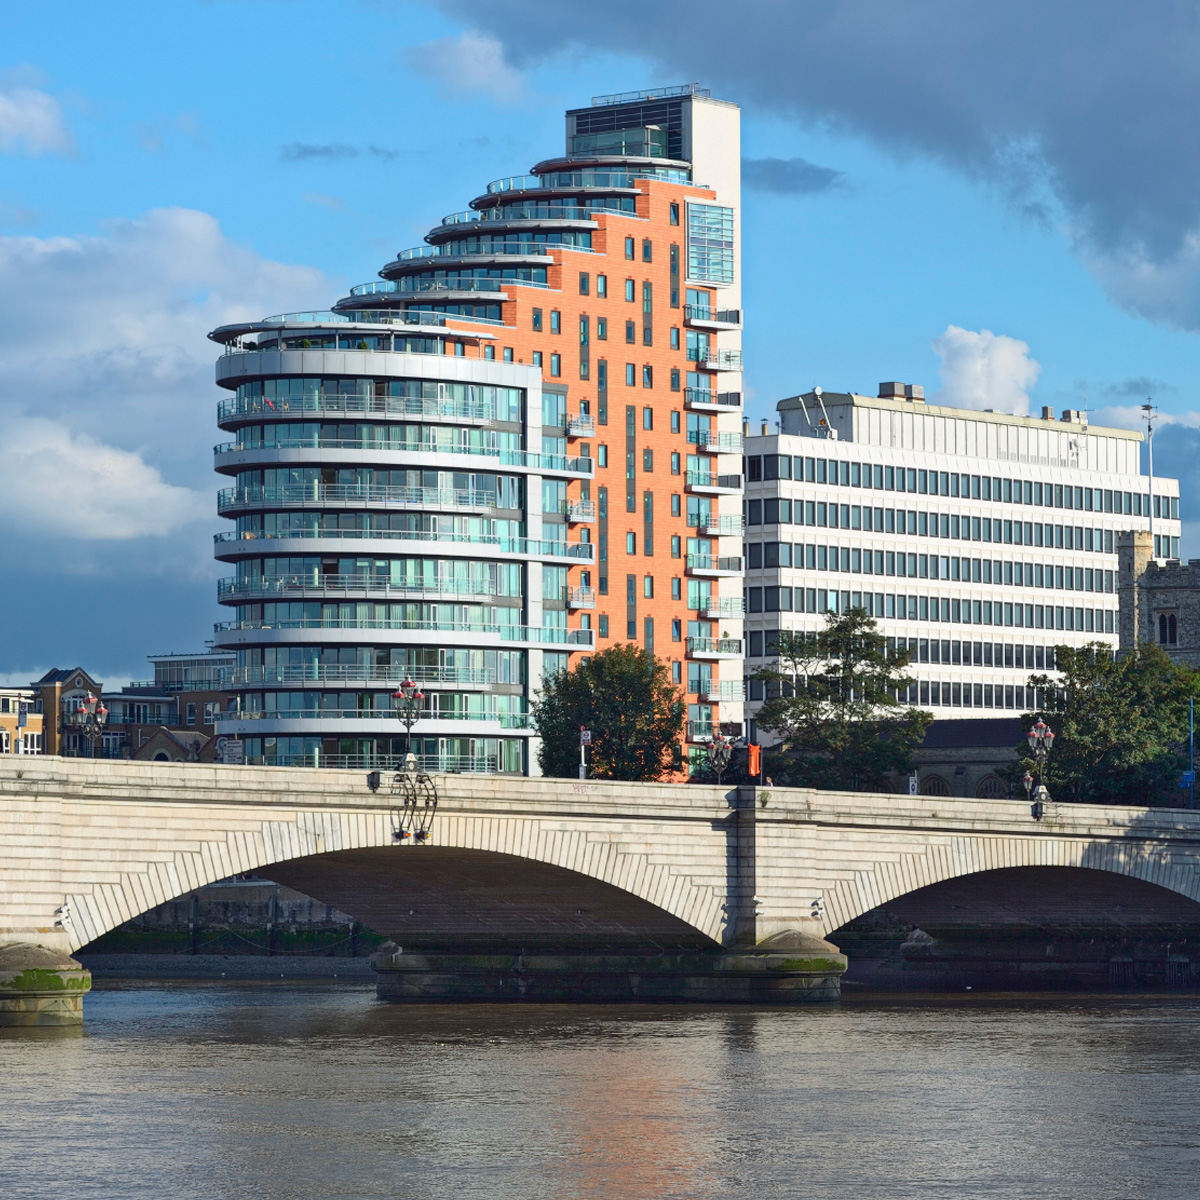 Equity finance arranged for multi-let property in South West London